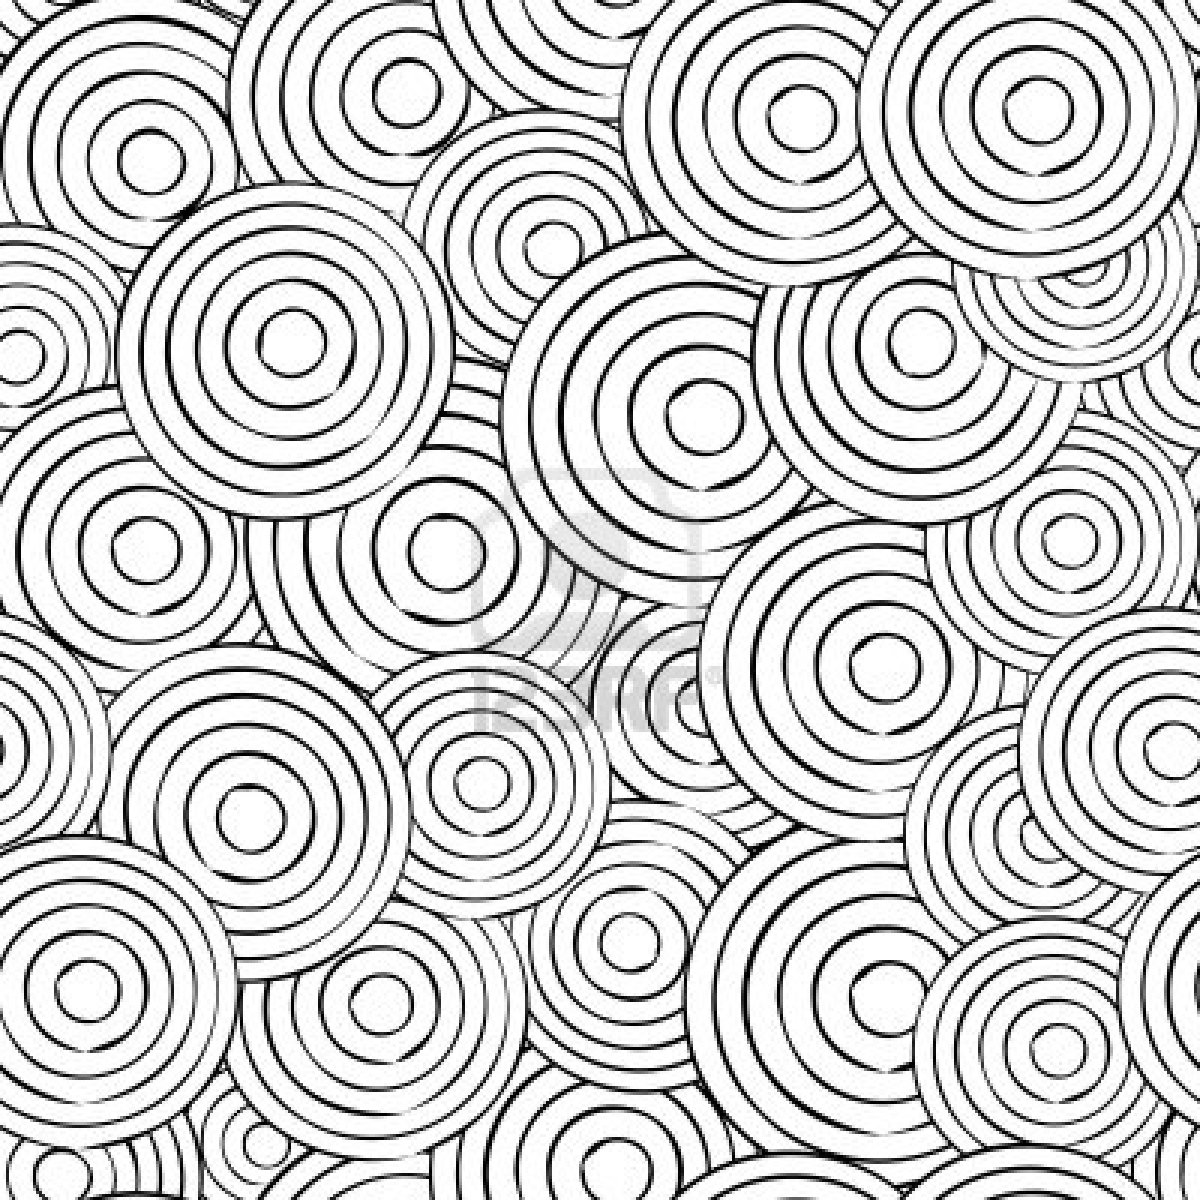 Cool Drawing Patterns at GetDrawings.com | Free for personal use ...